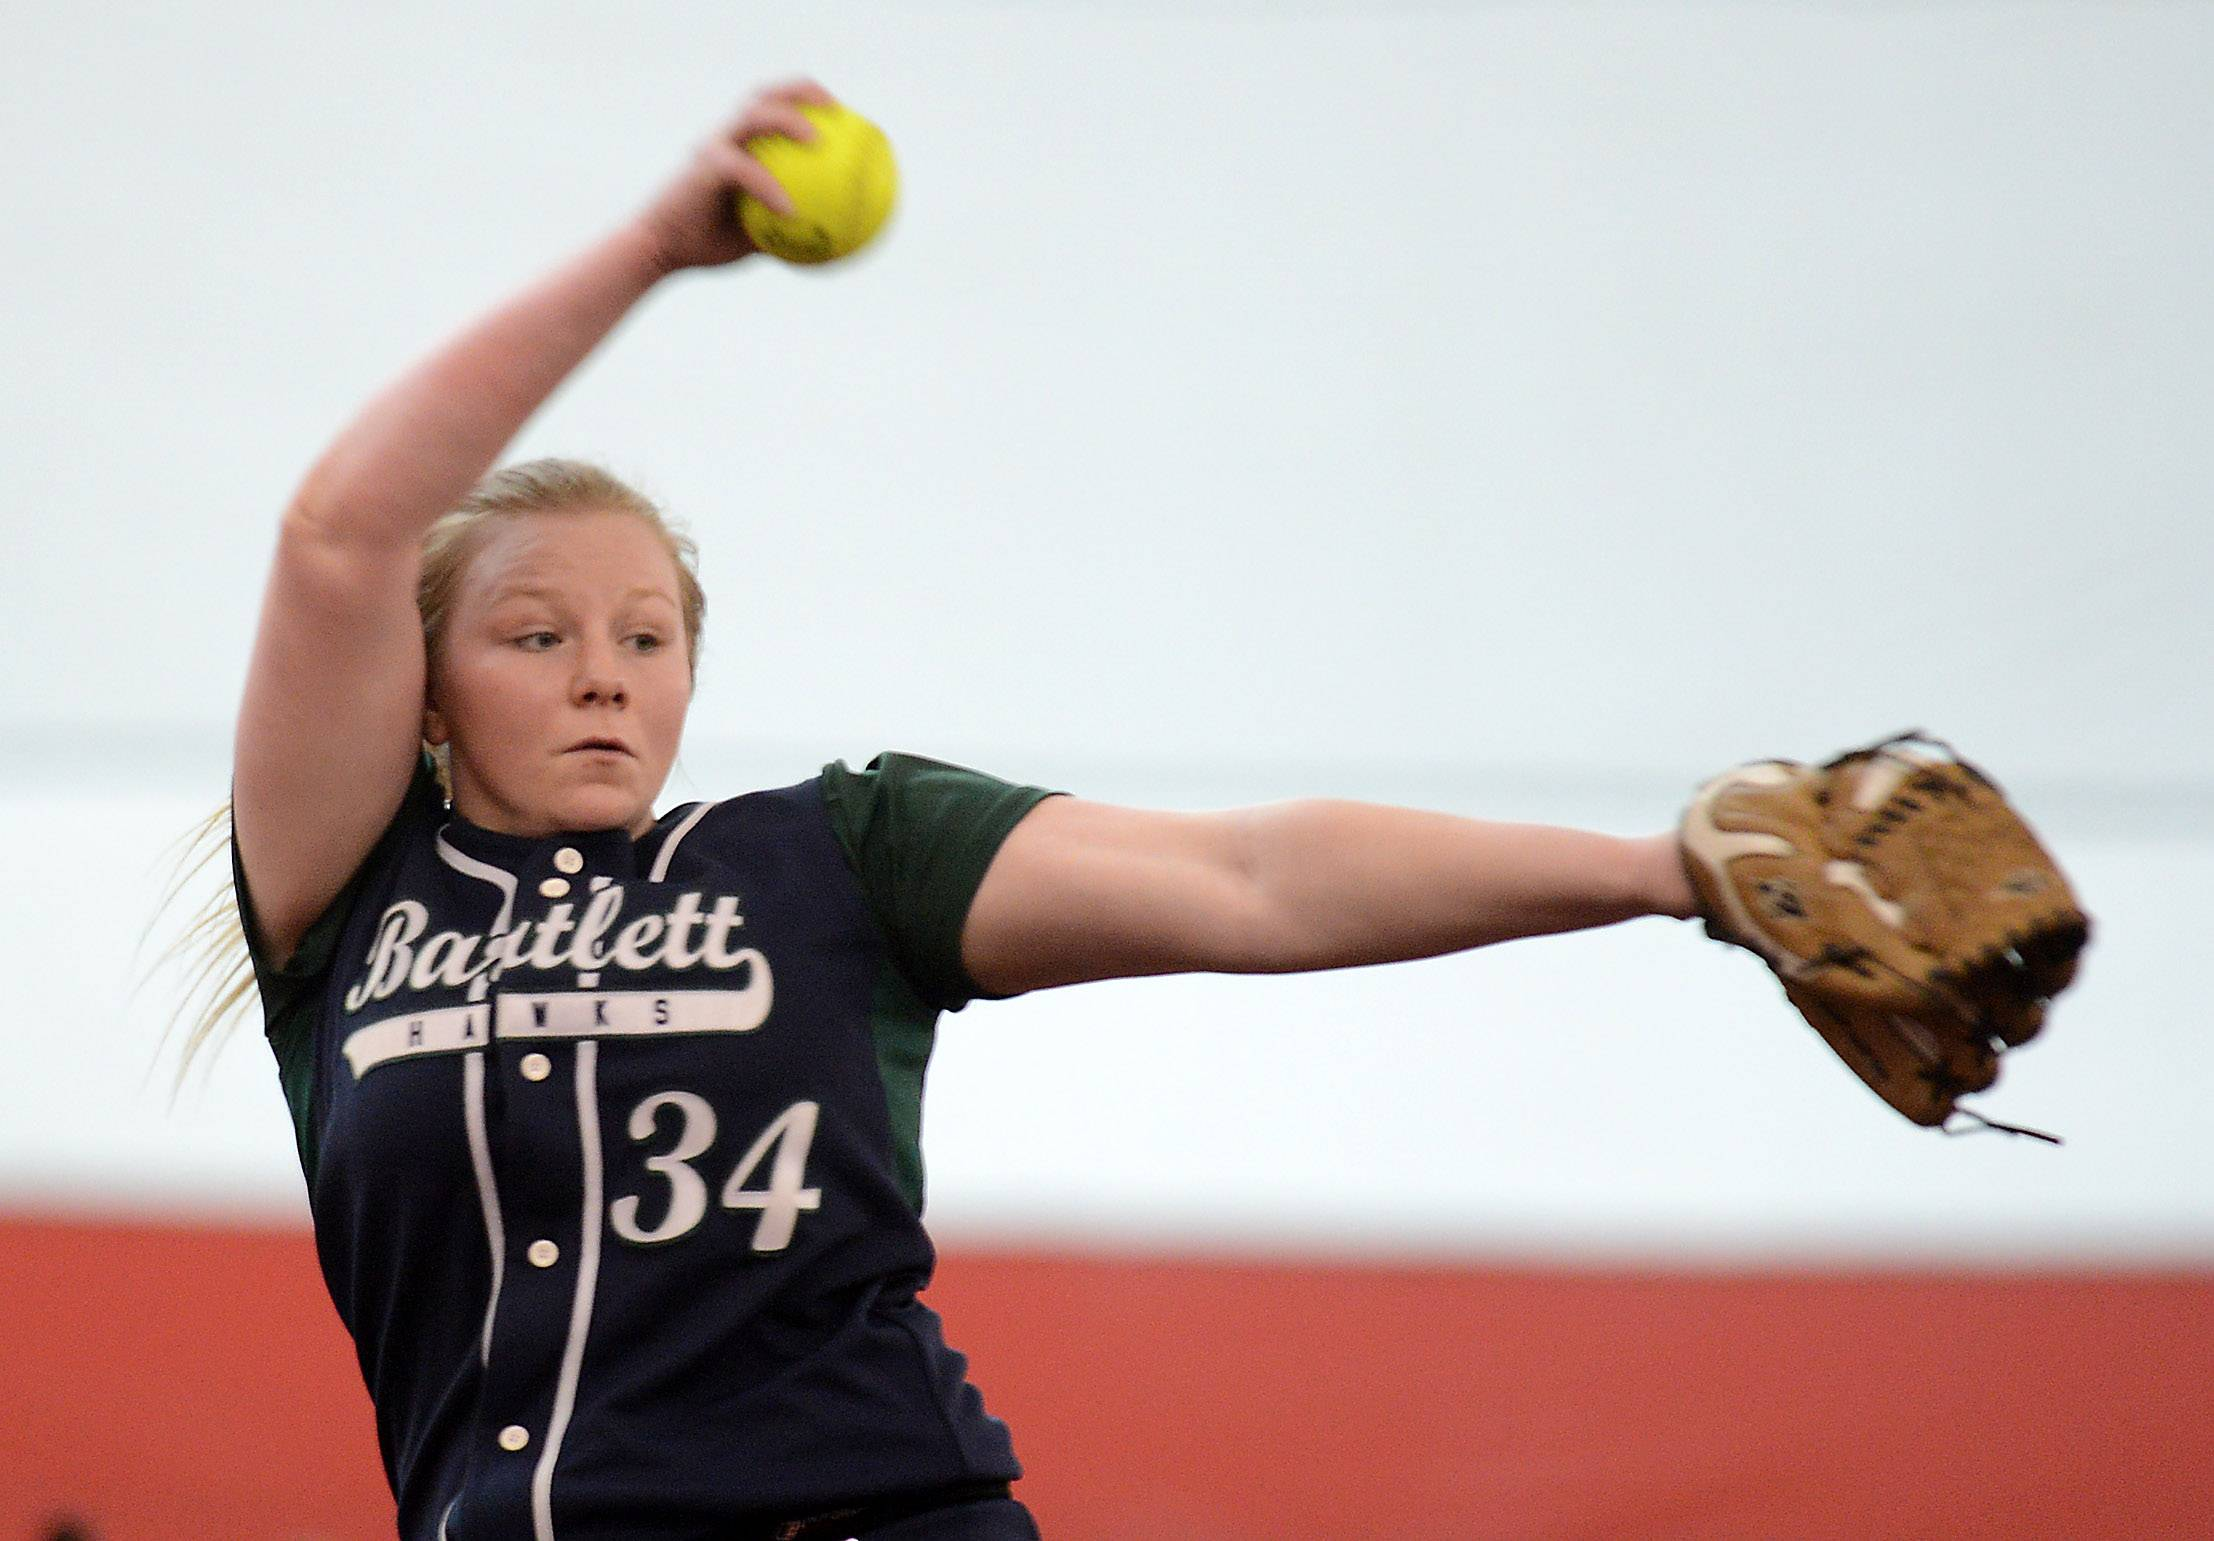 Bartlett's Amy Johnson delivers a pitch against Plainfield Central during softball action Tuesday in Rosemont.